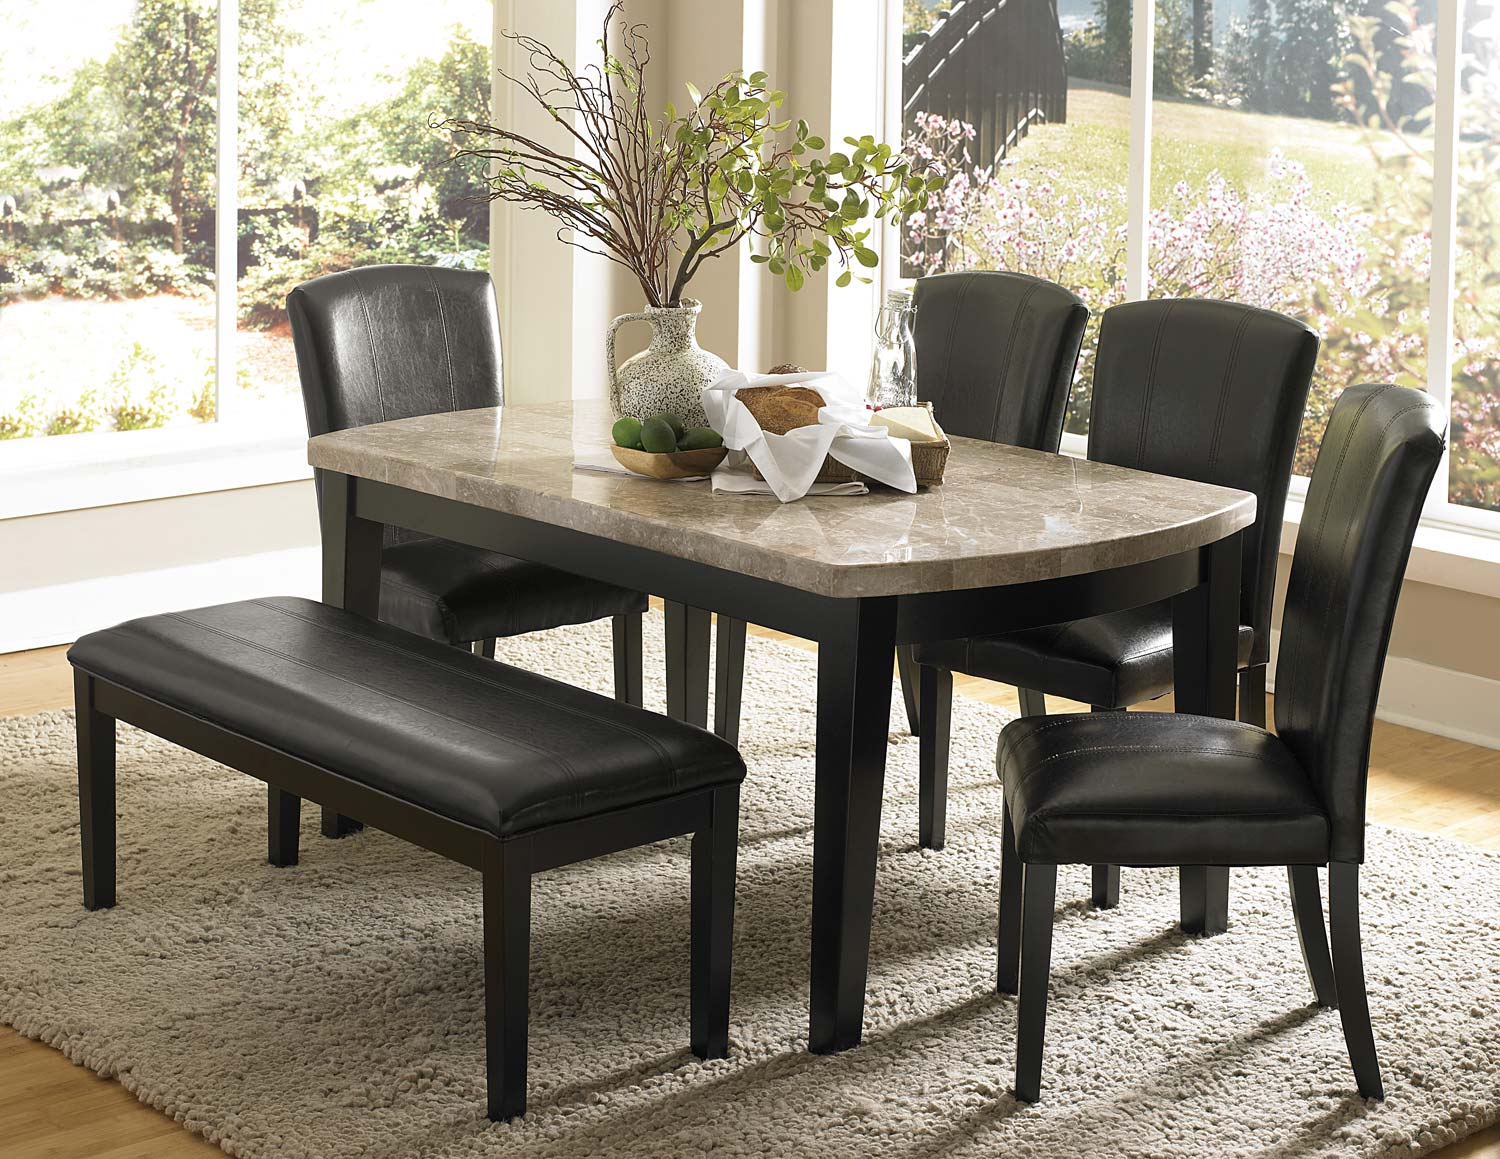 Homelegance Cristo Dining Set - Black Wood - Marble Top